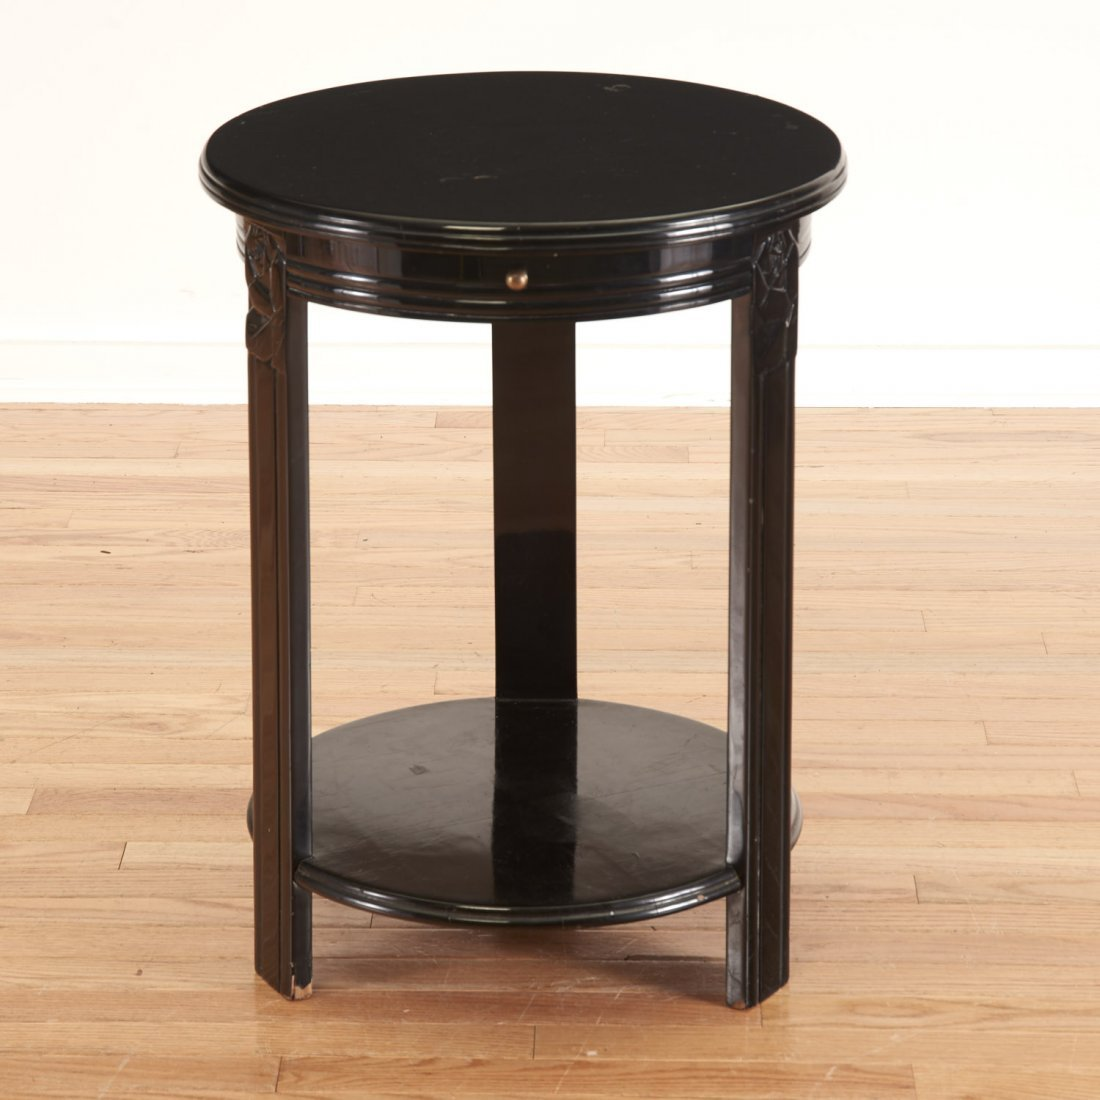 Art Deco style black lacquered center table